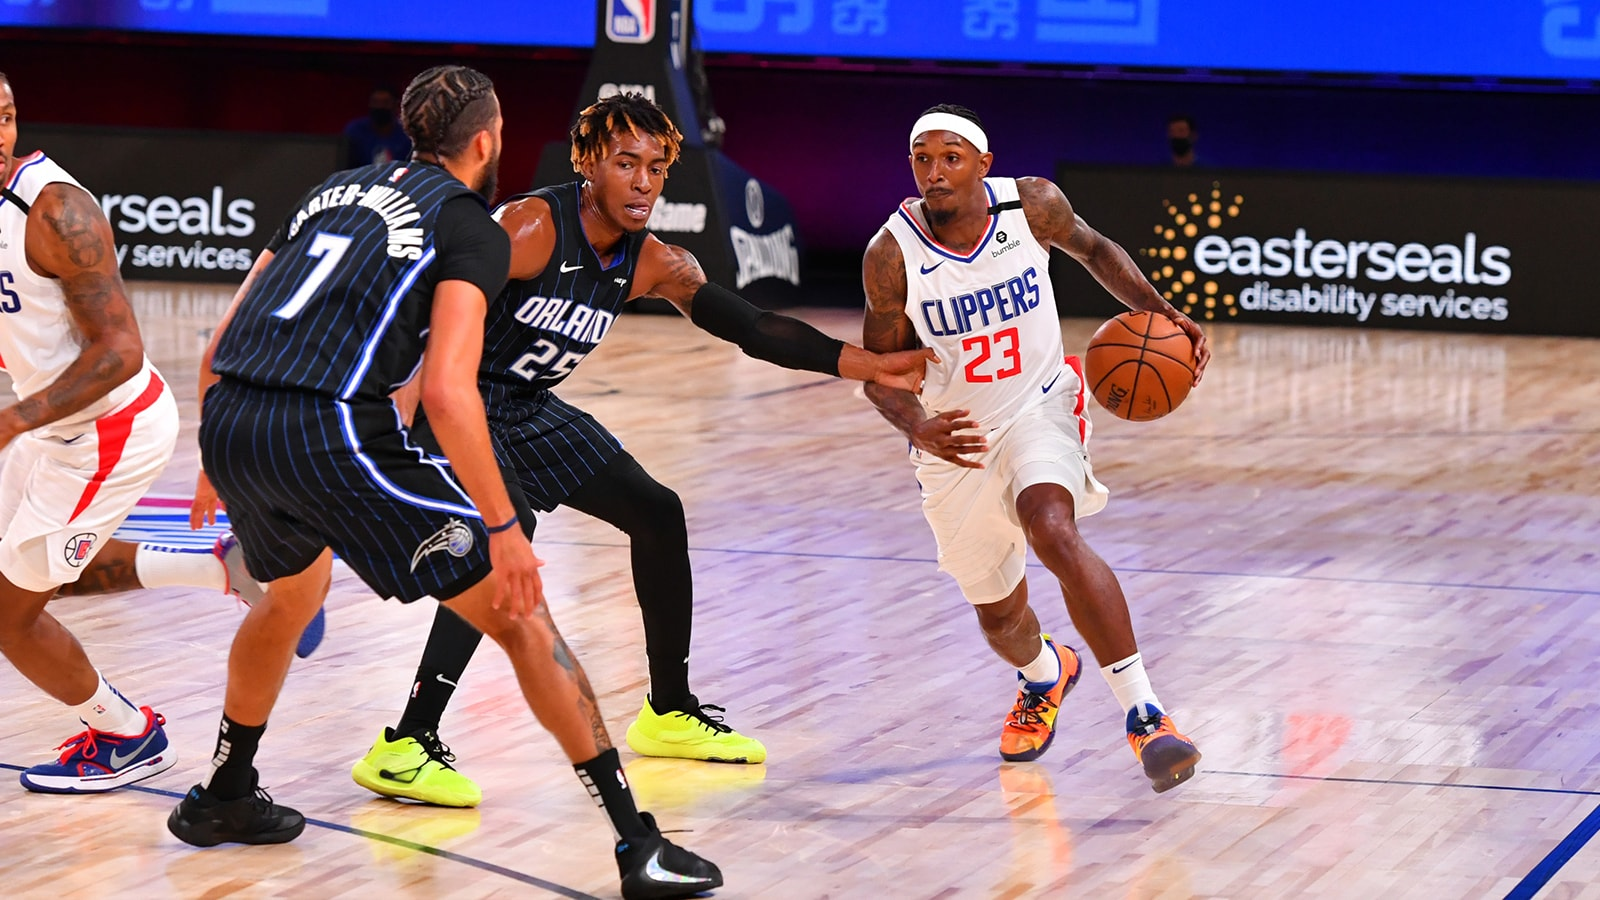 Lou Williams attacks on the dribble